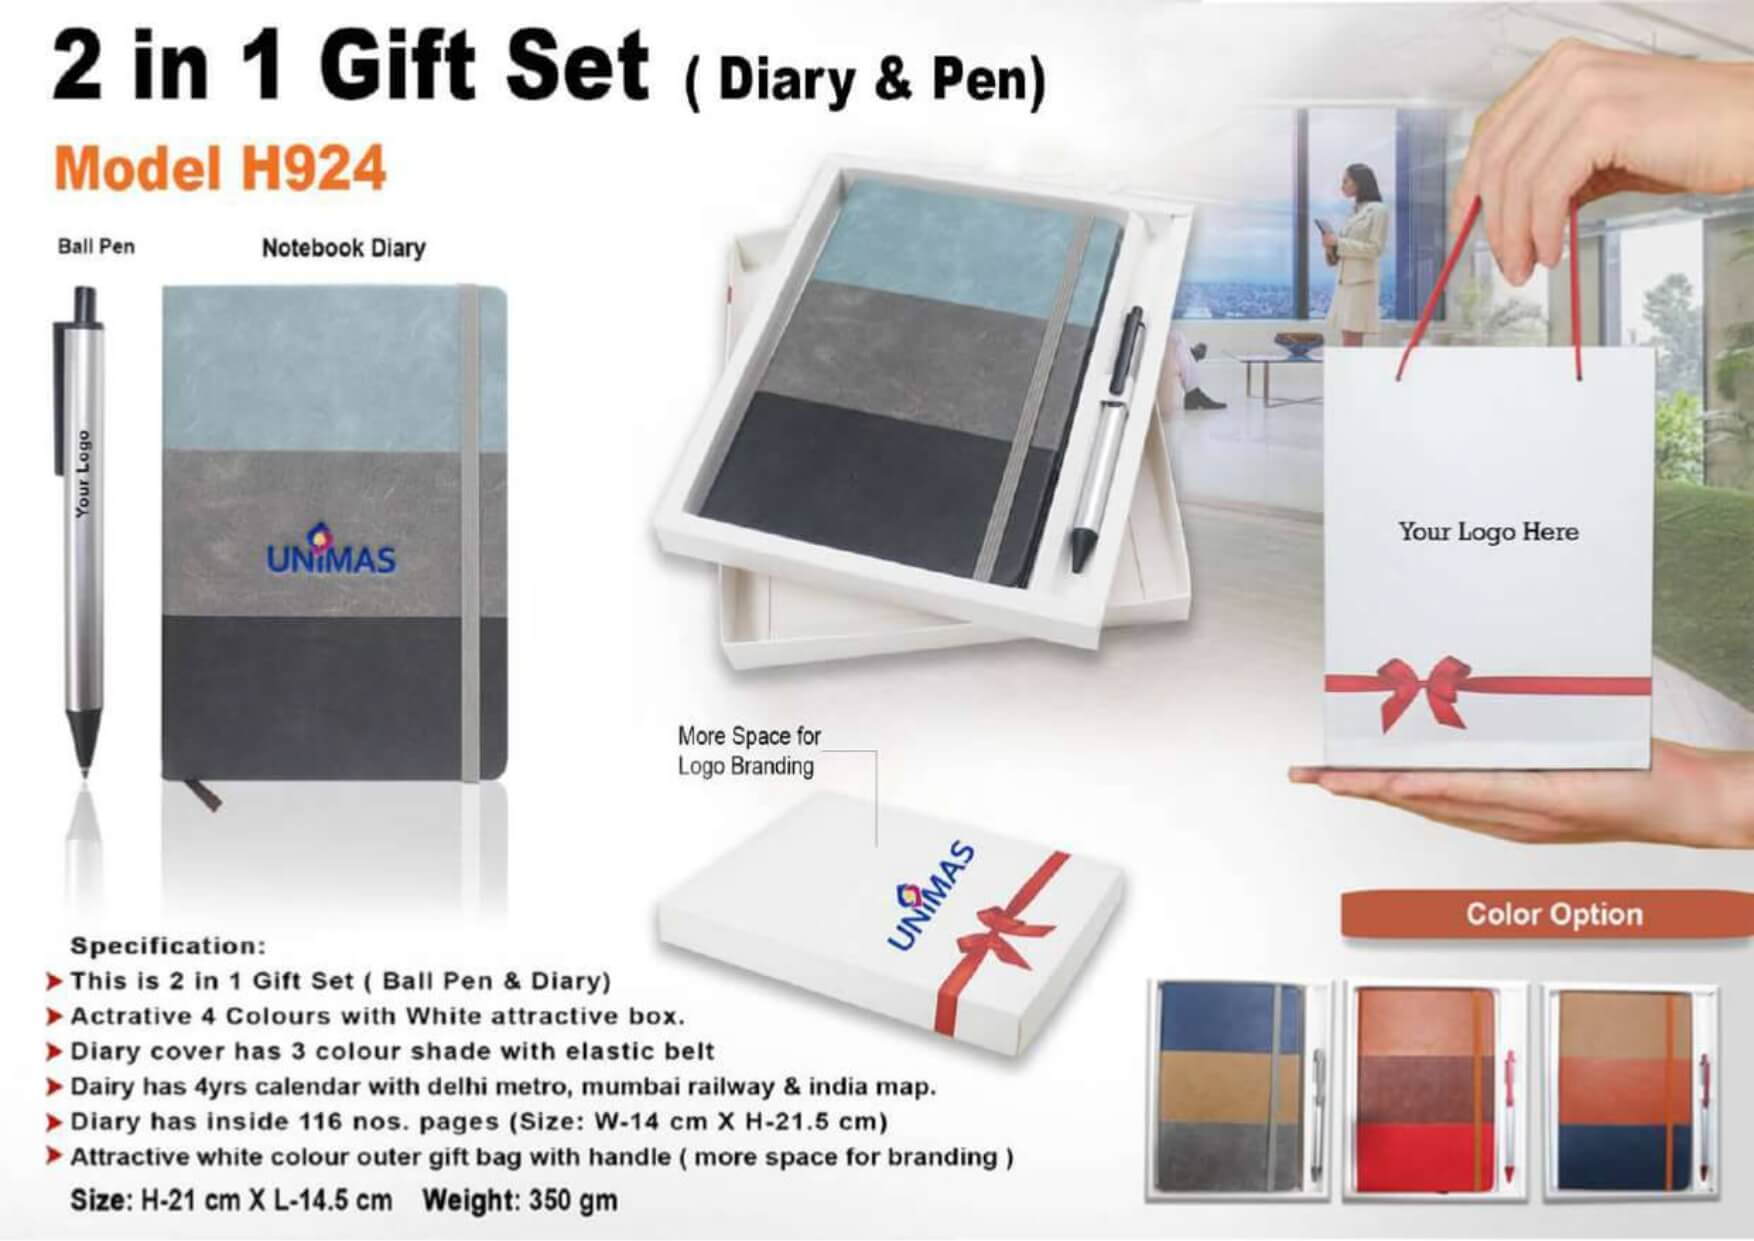 Diary and Pen 2 in 1 Gift Set 924